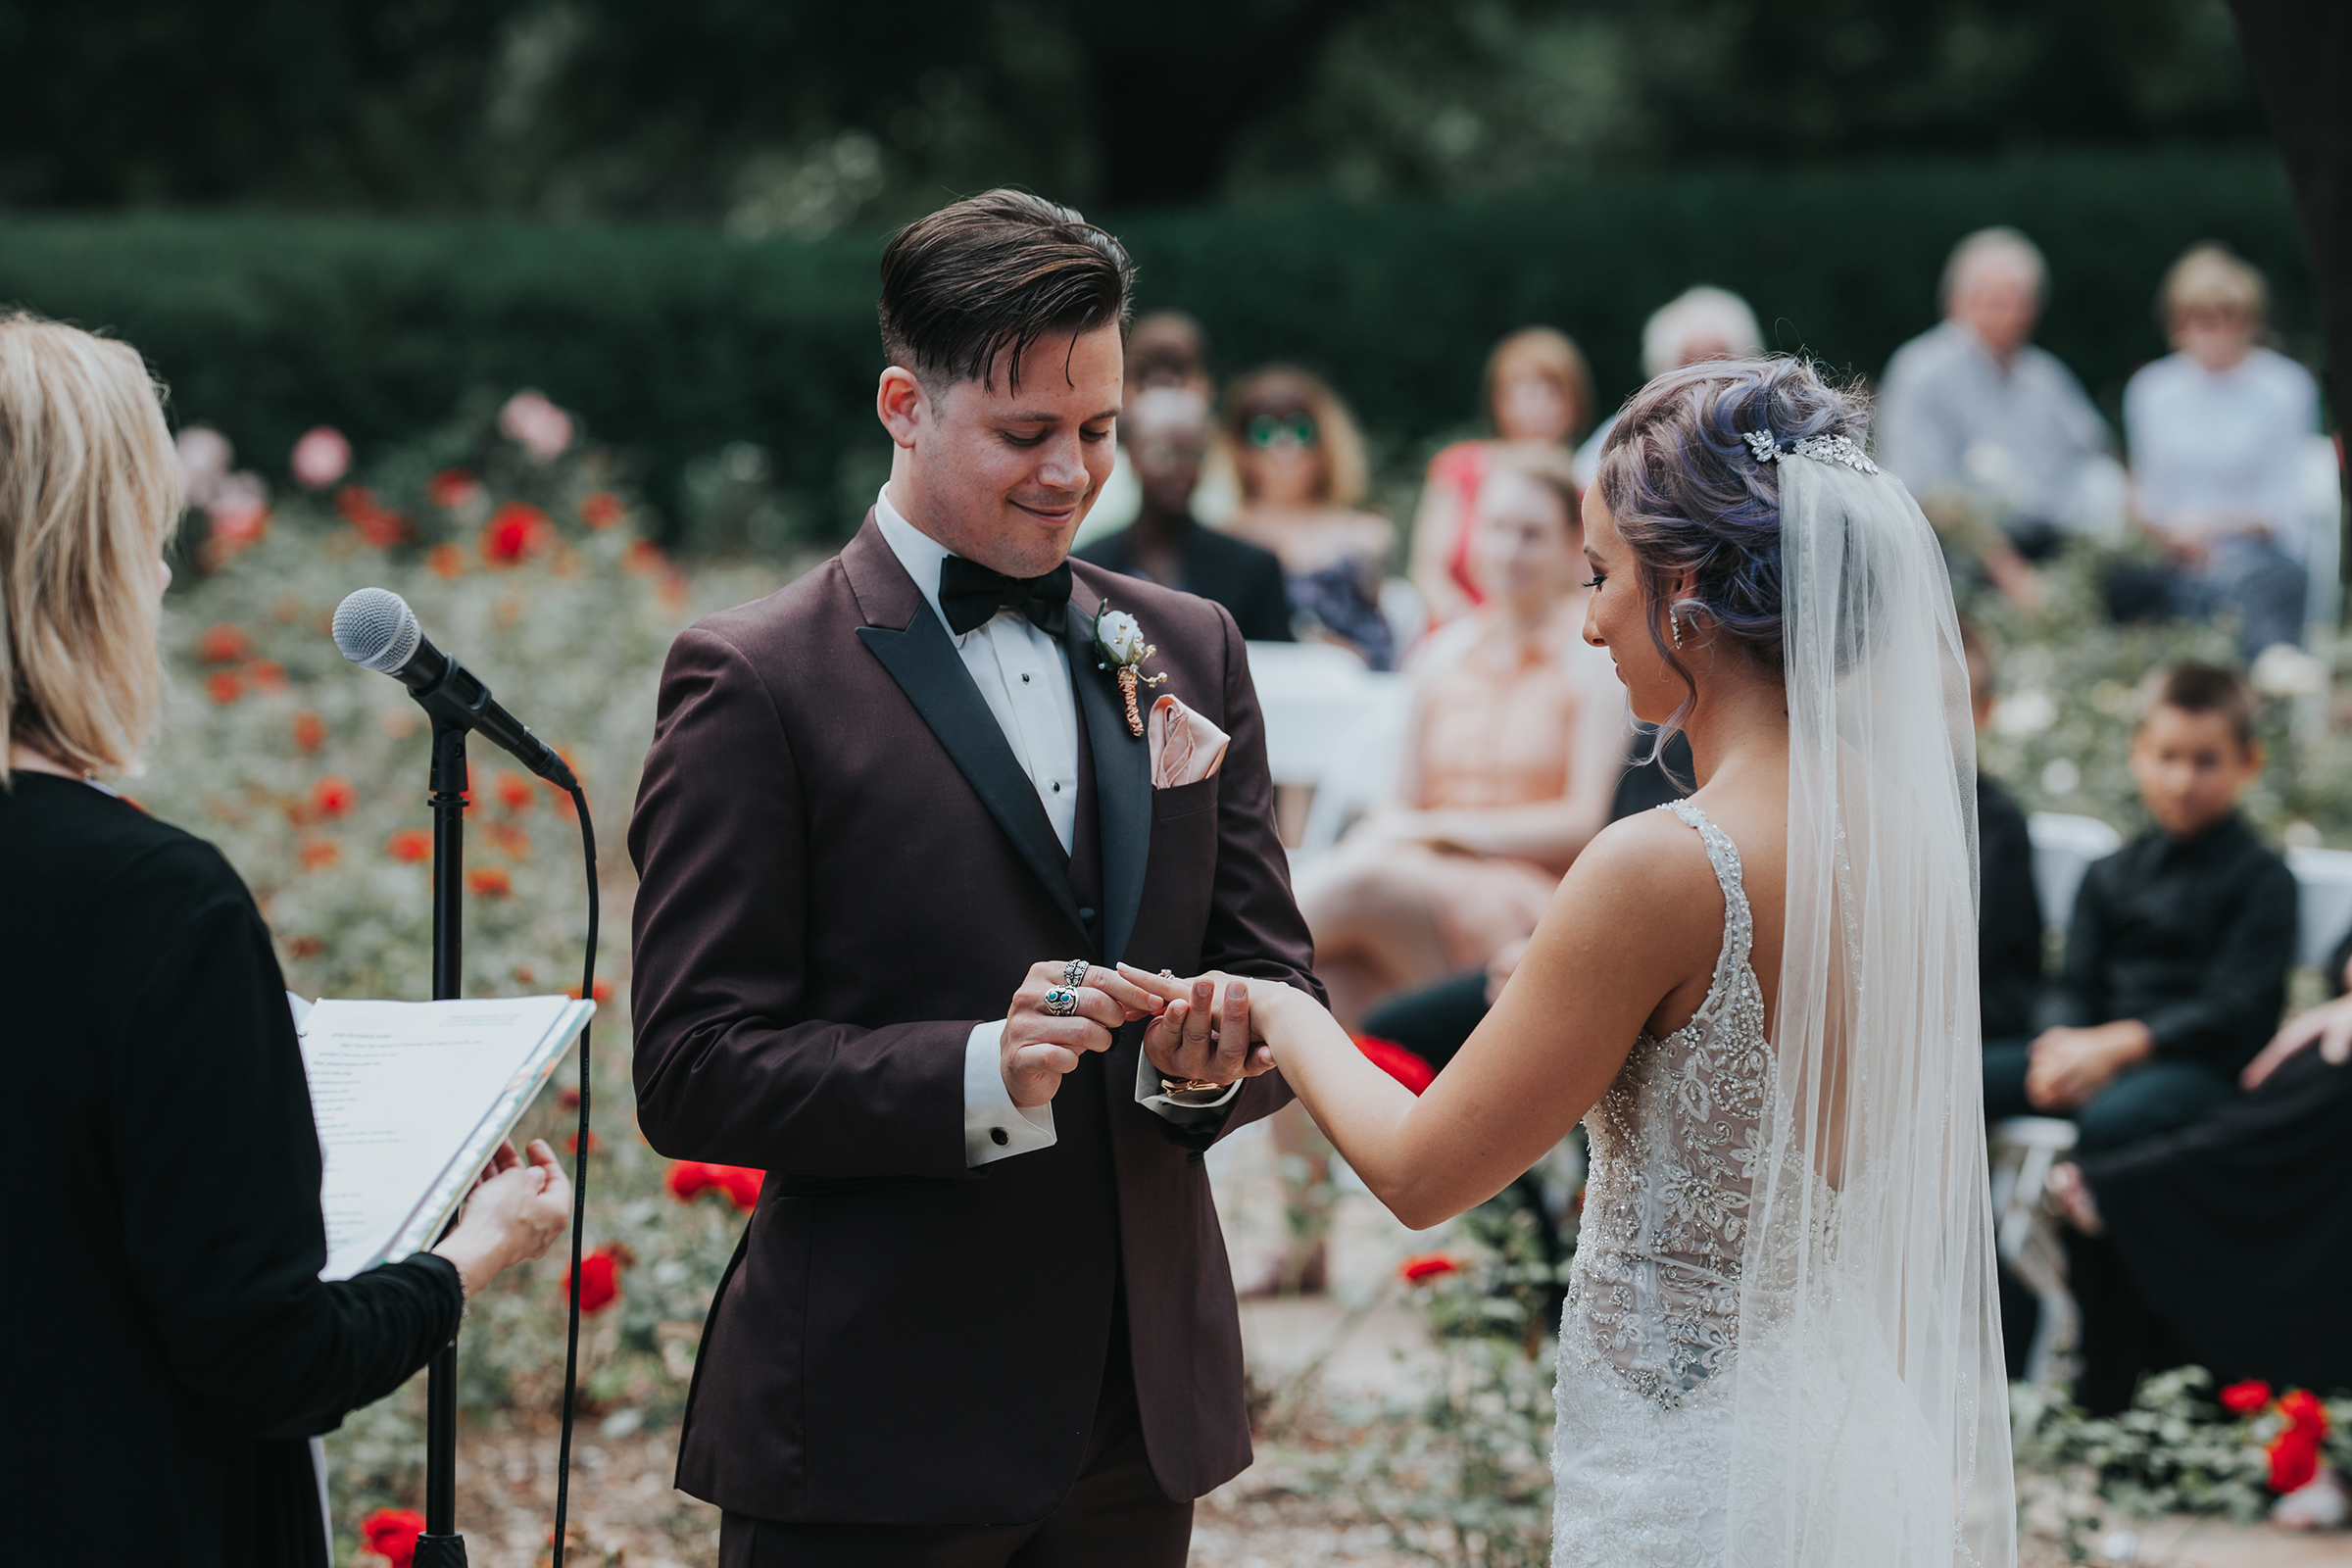 groom-putting-ring-on-bride-during-ceremony-rose-garden-raelyn-ramey-photography.jpg